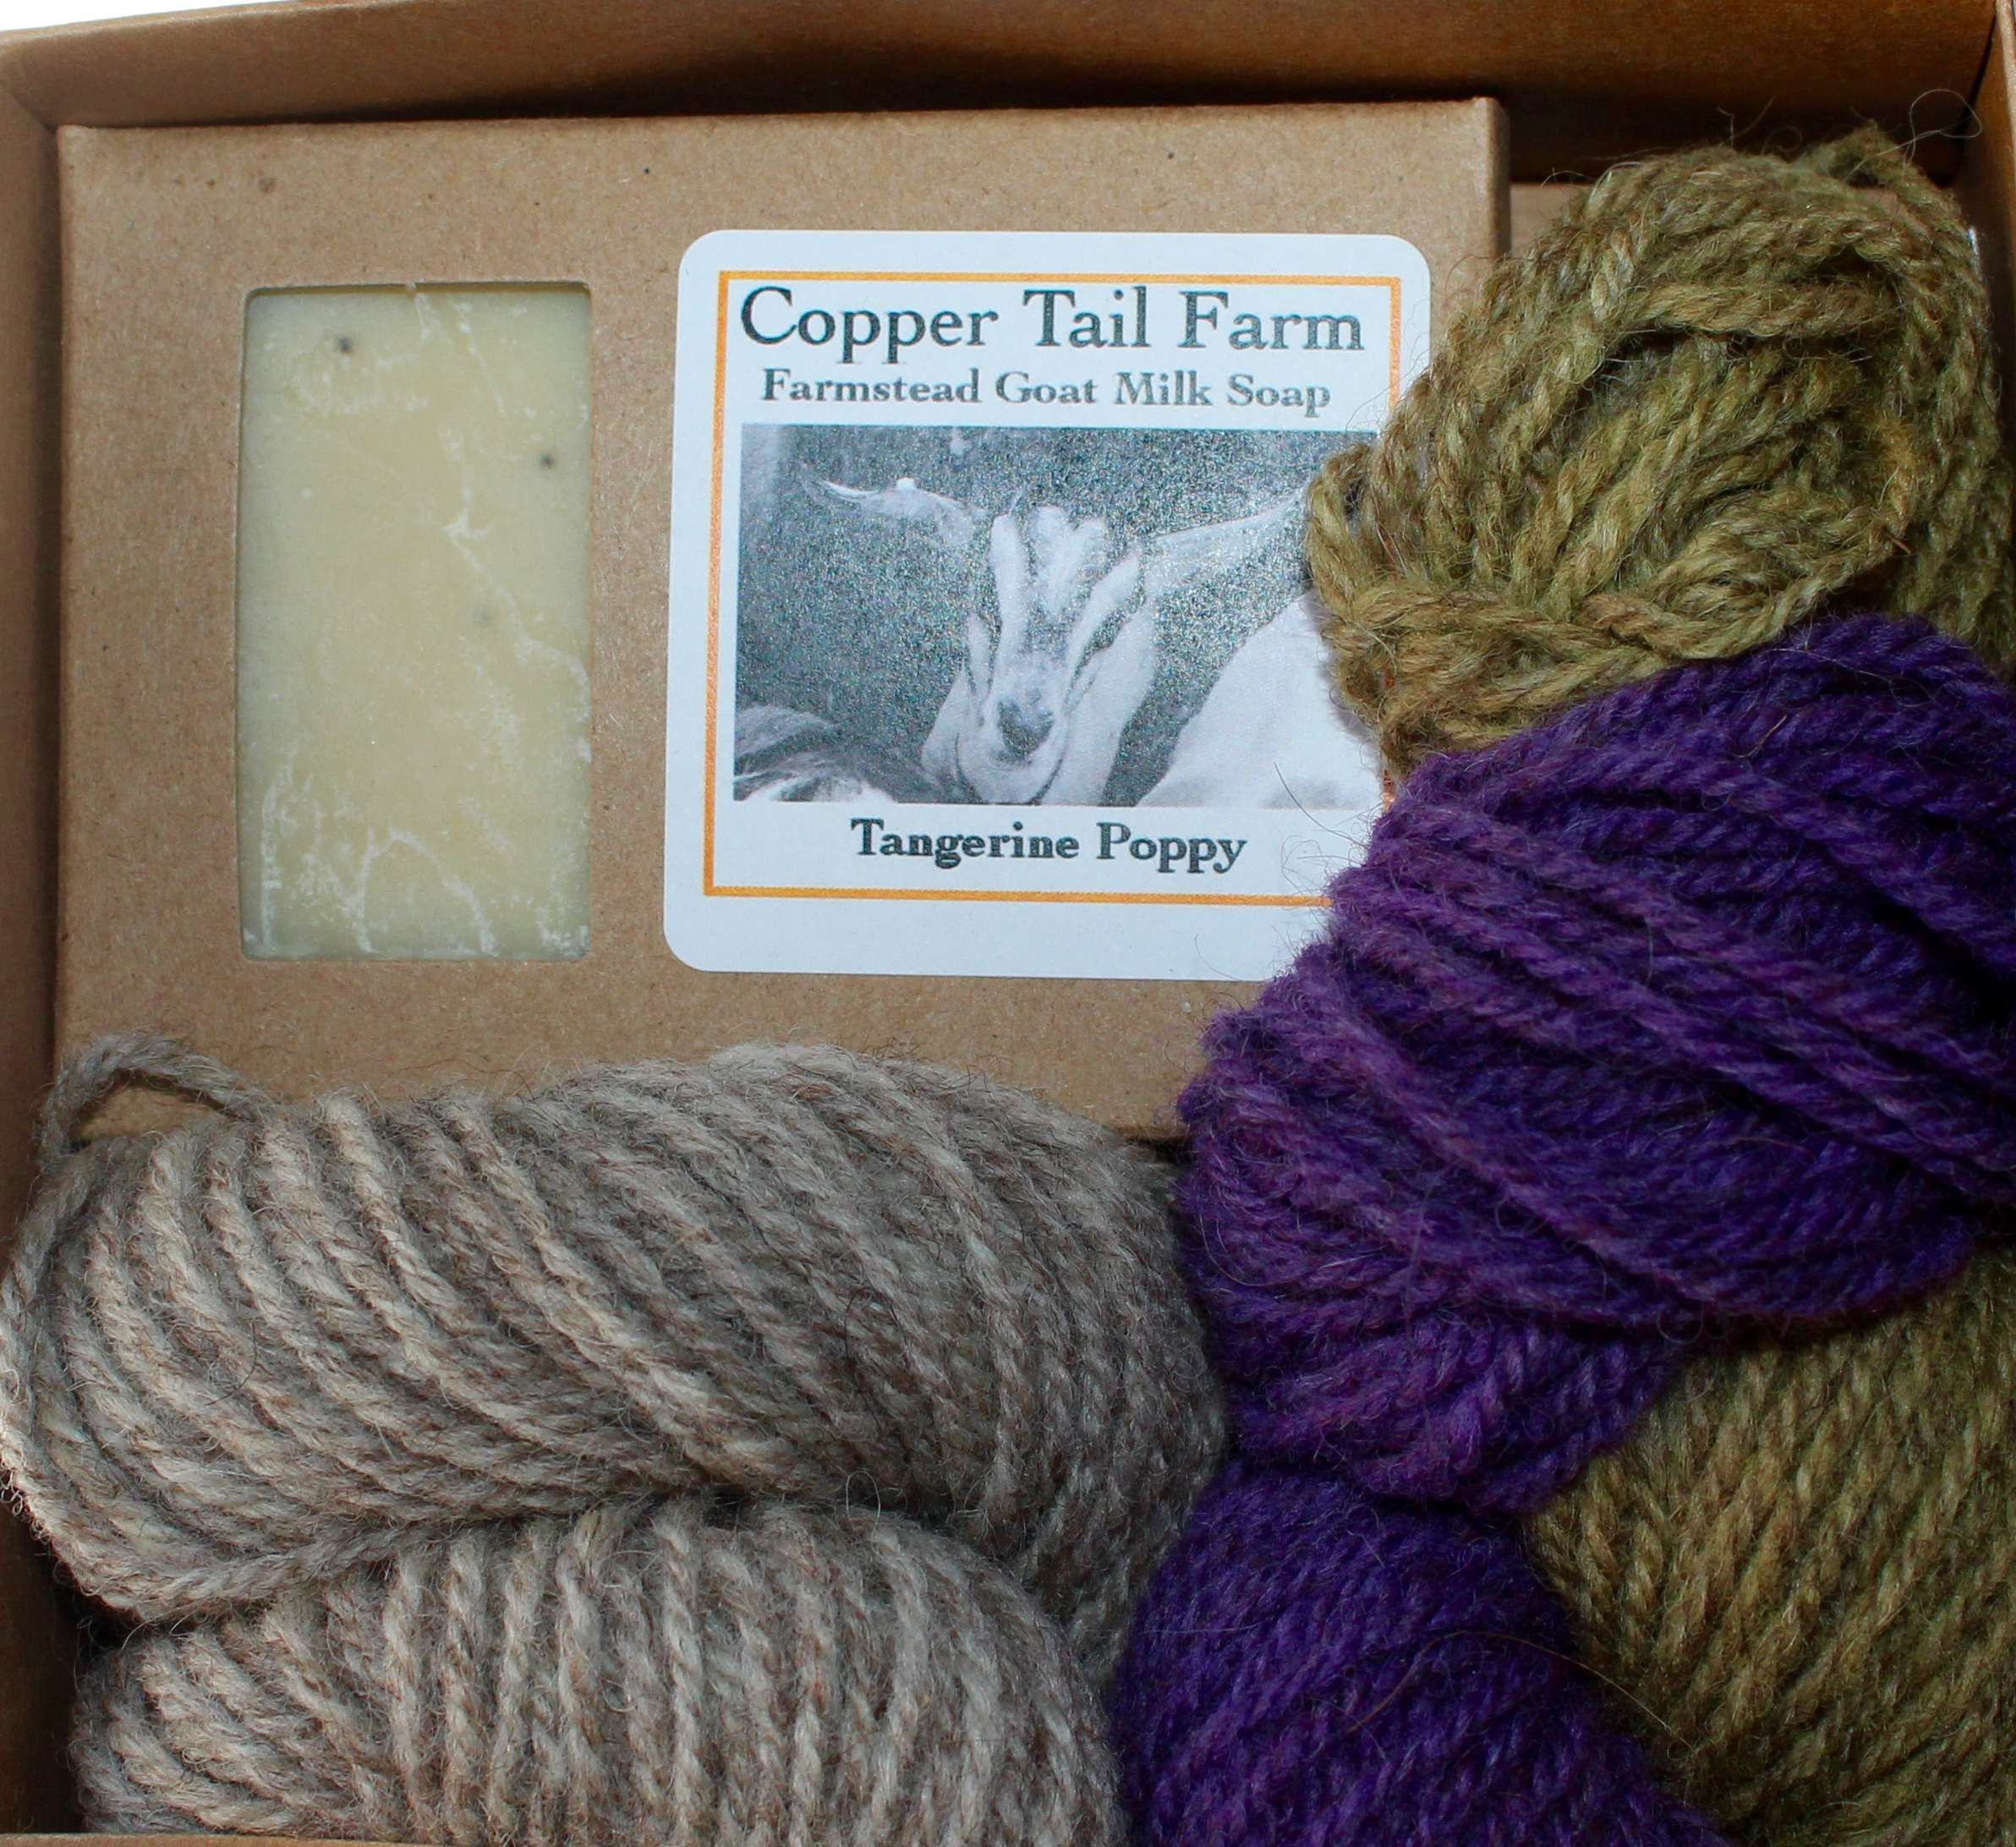 Kits from Copper Tail Farm